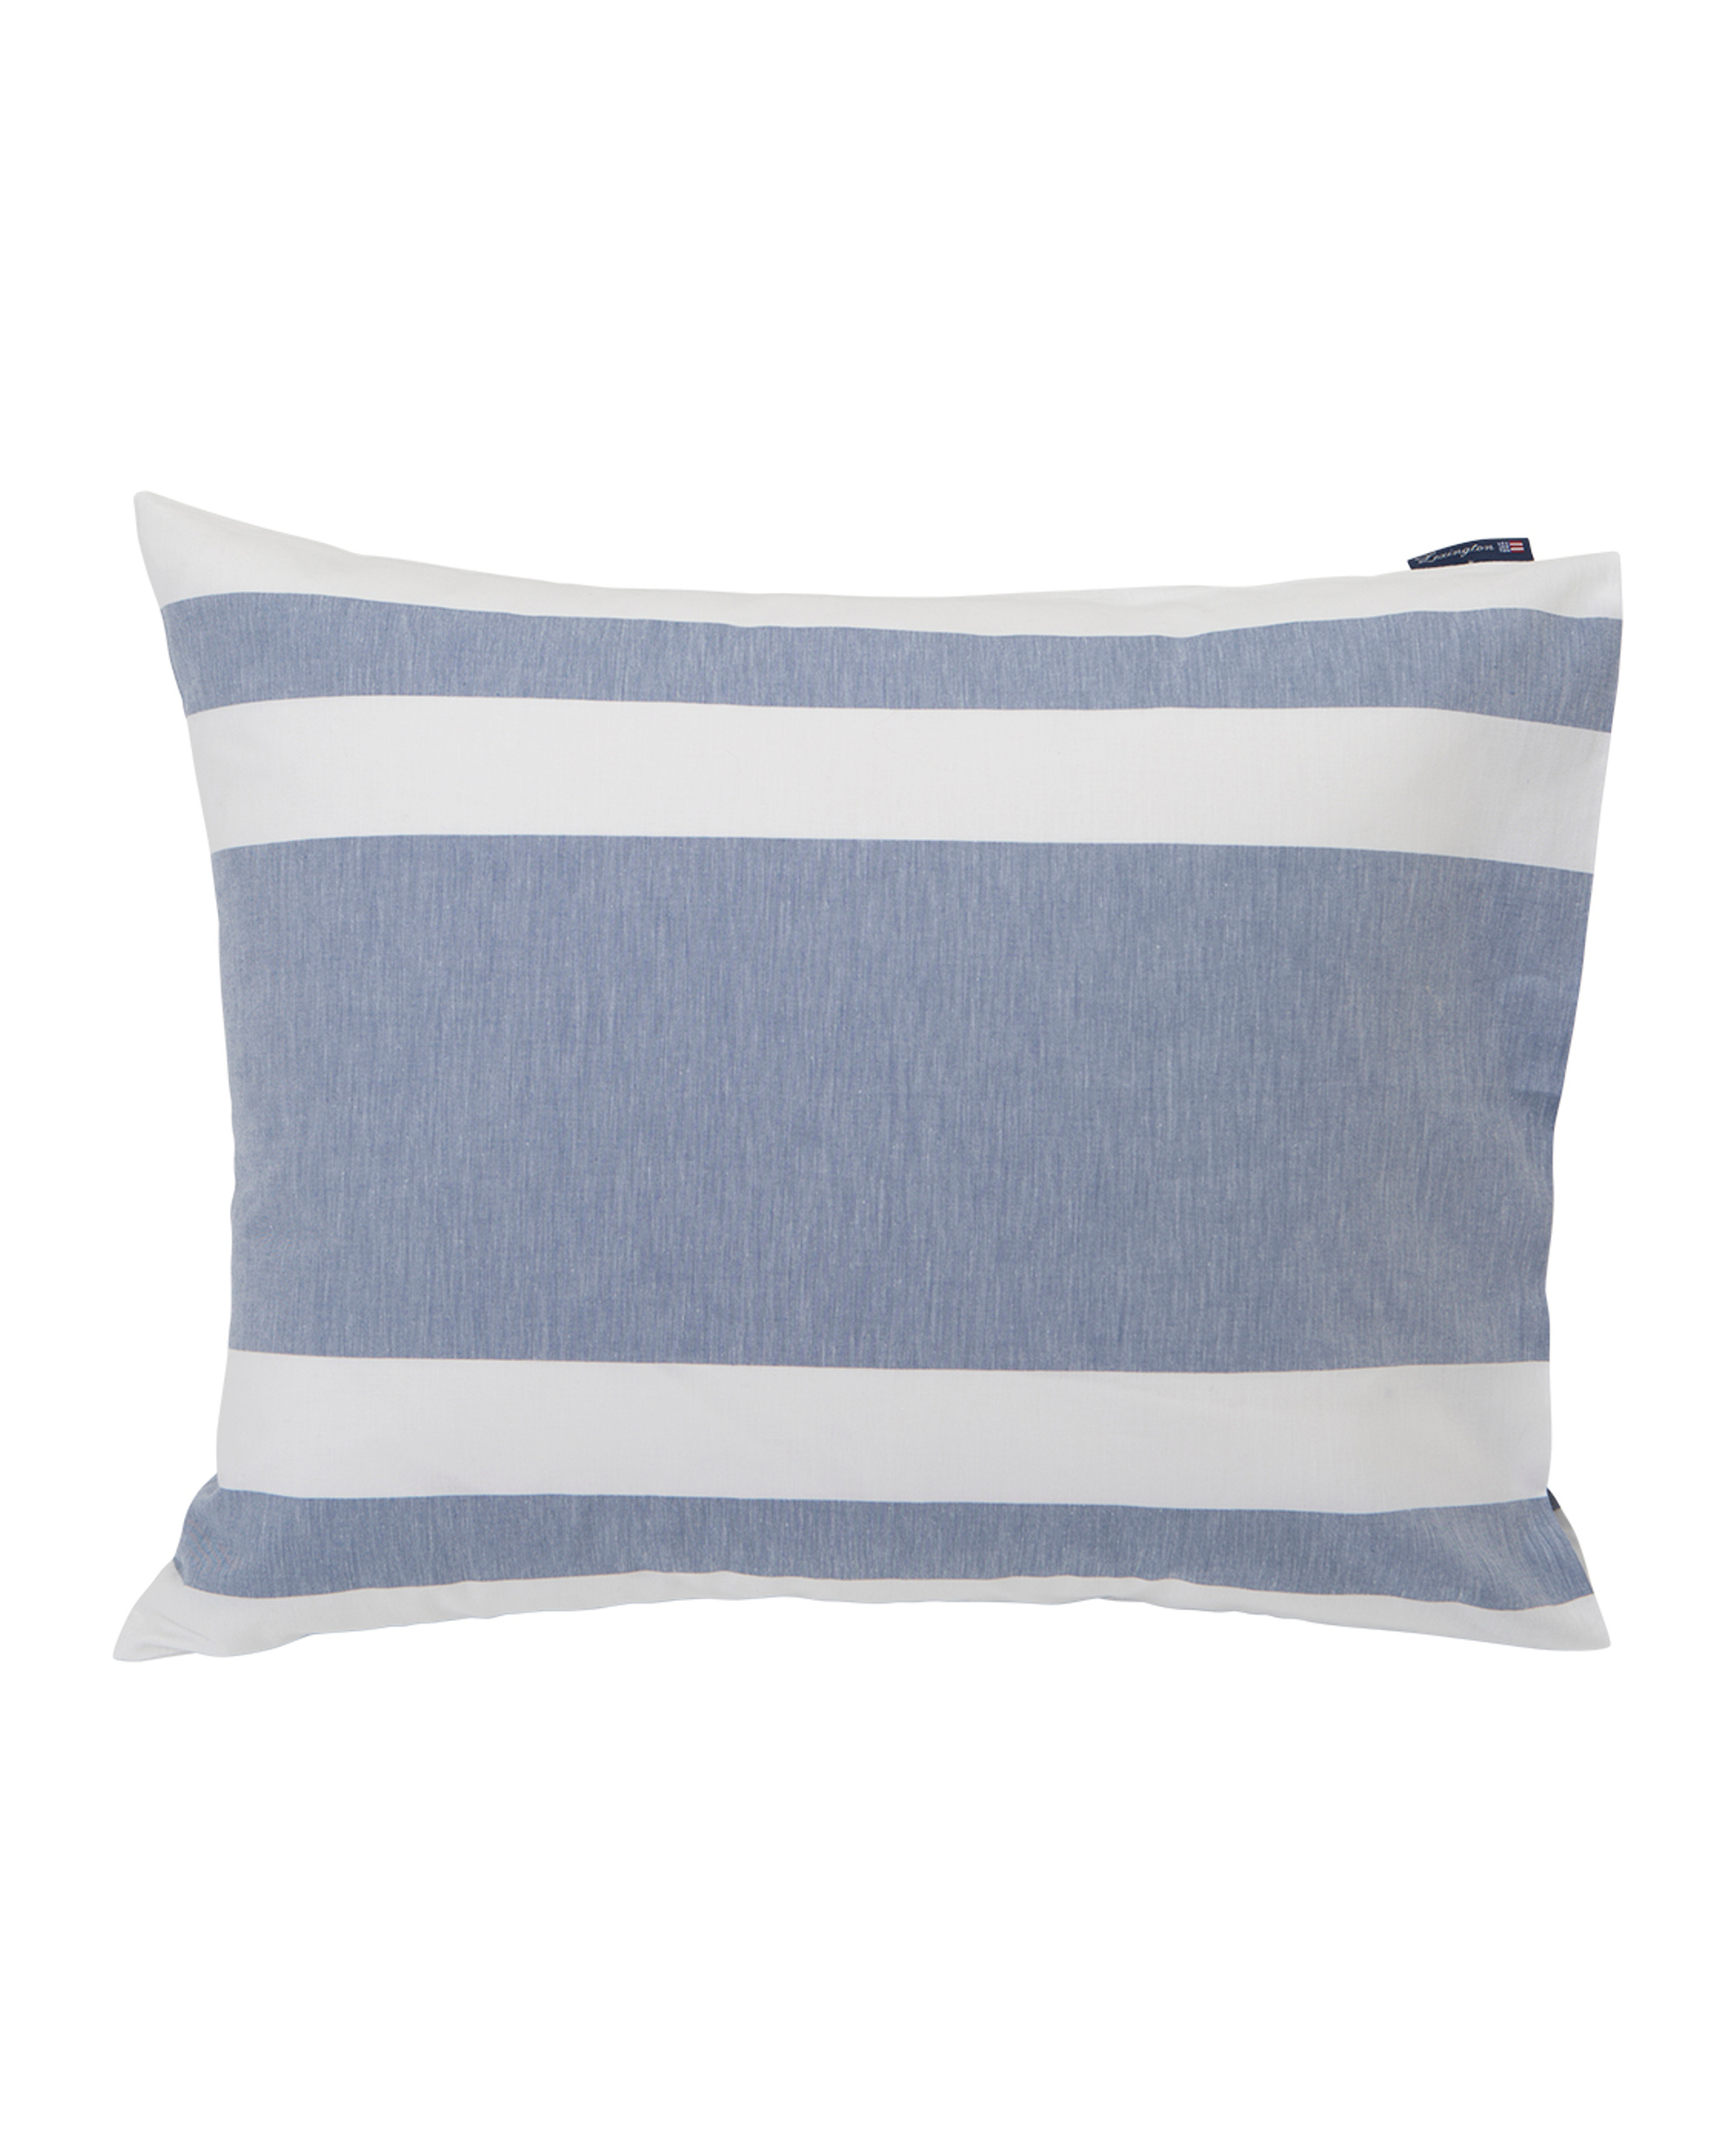 Blue Horizontal Striped Poplin Pillowcase